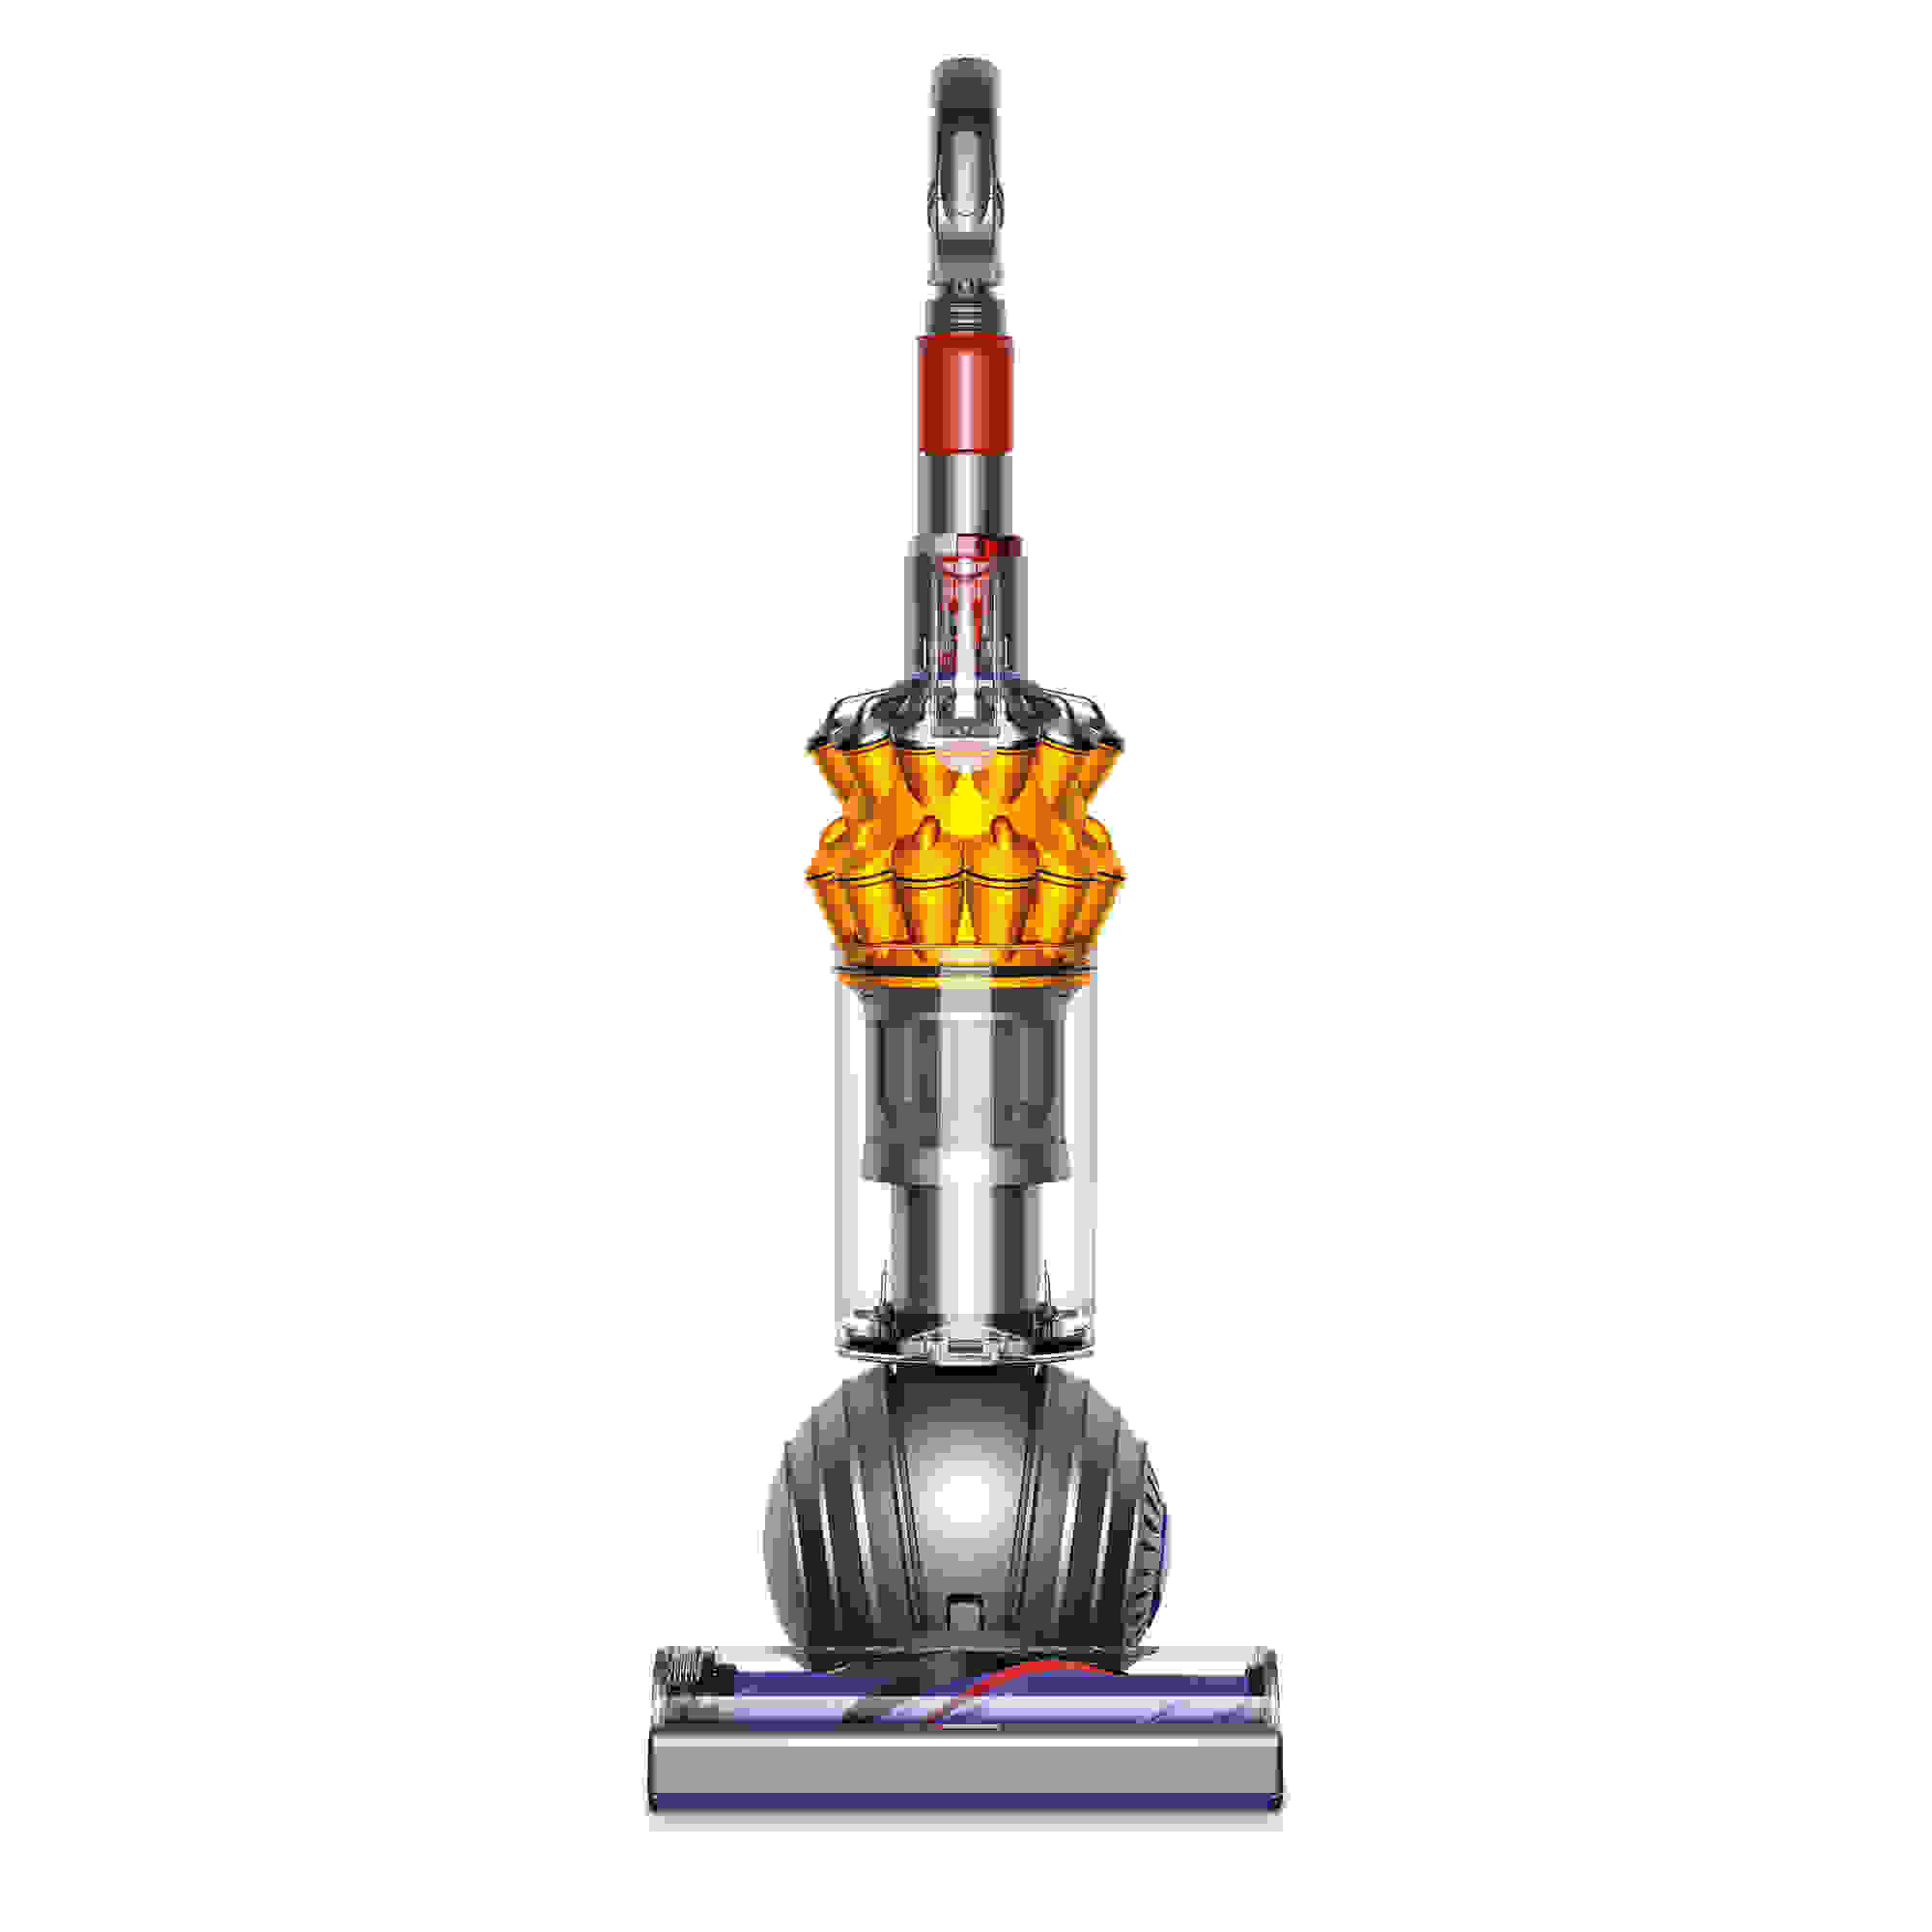 The Dyson Small Ball